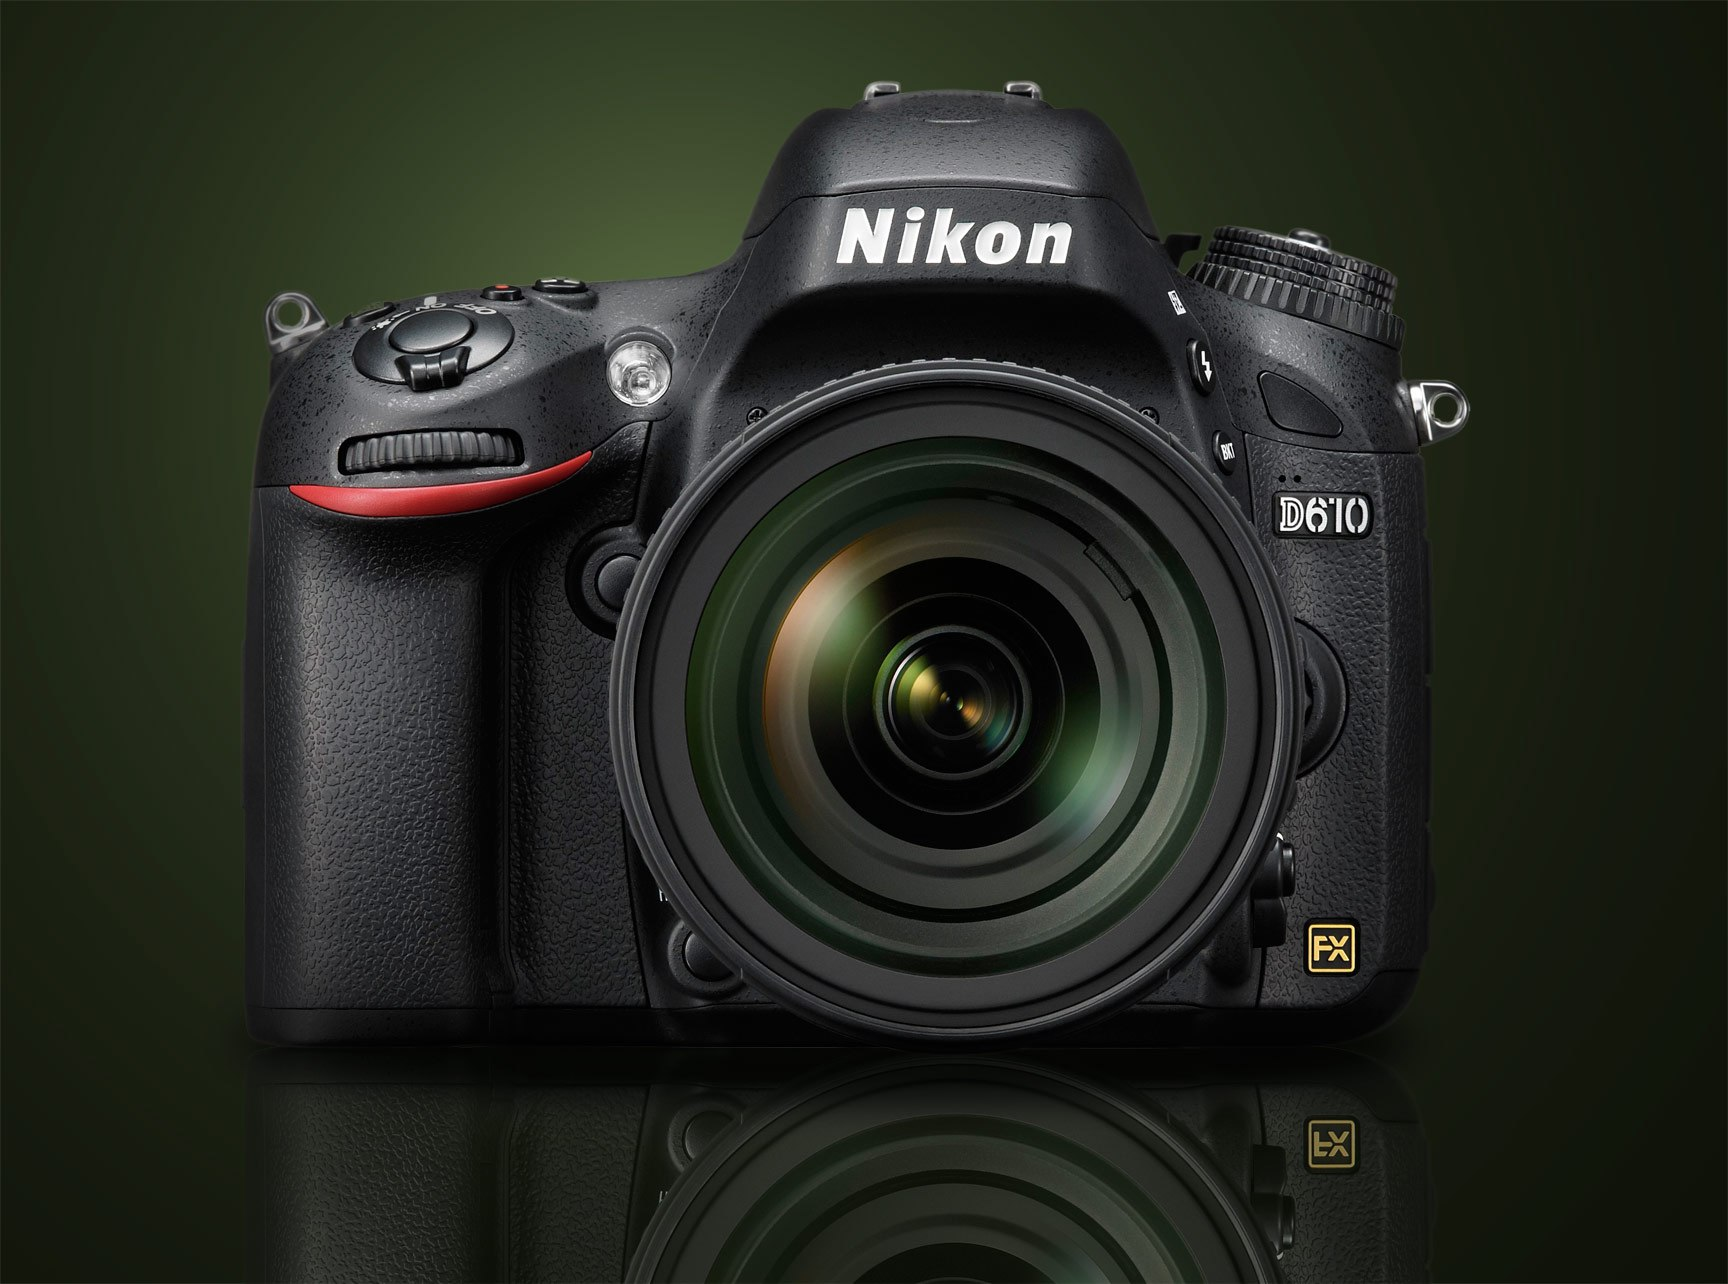 2016 Nikon D610 Black Friday Cyber Monday Deals Sales